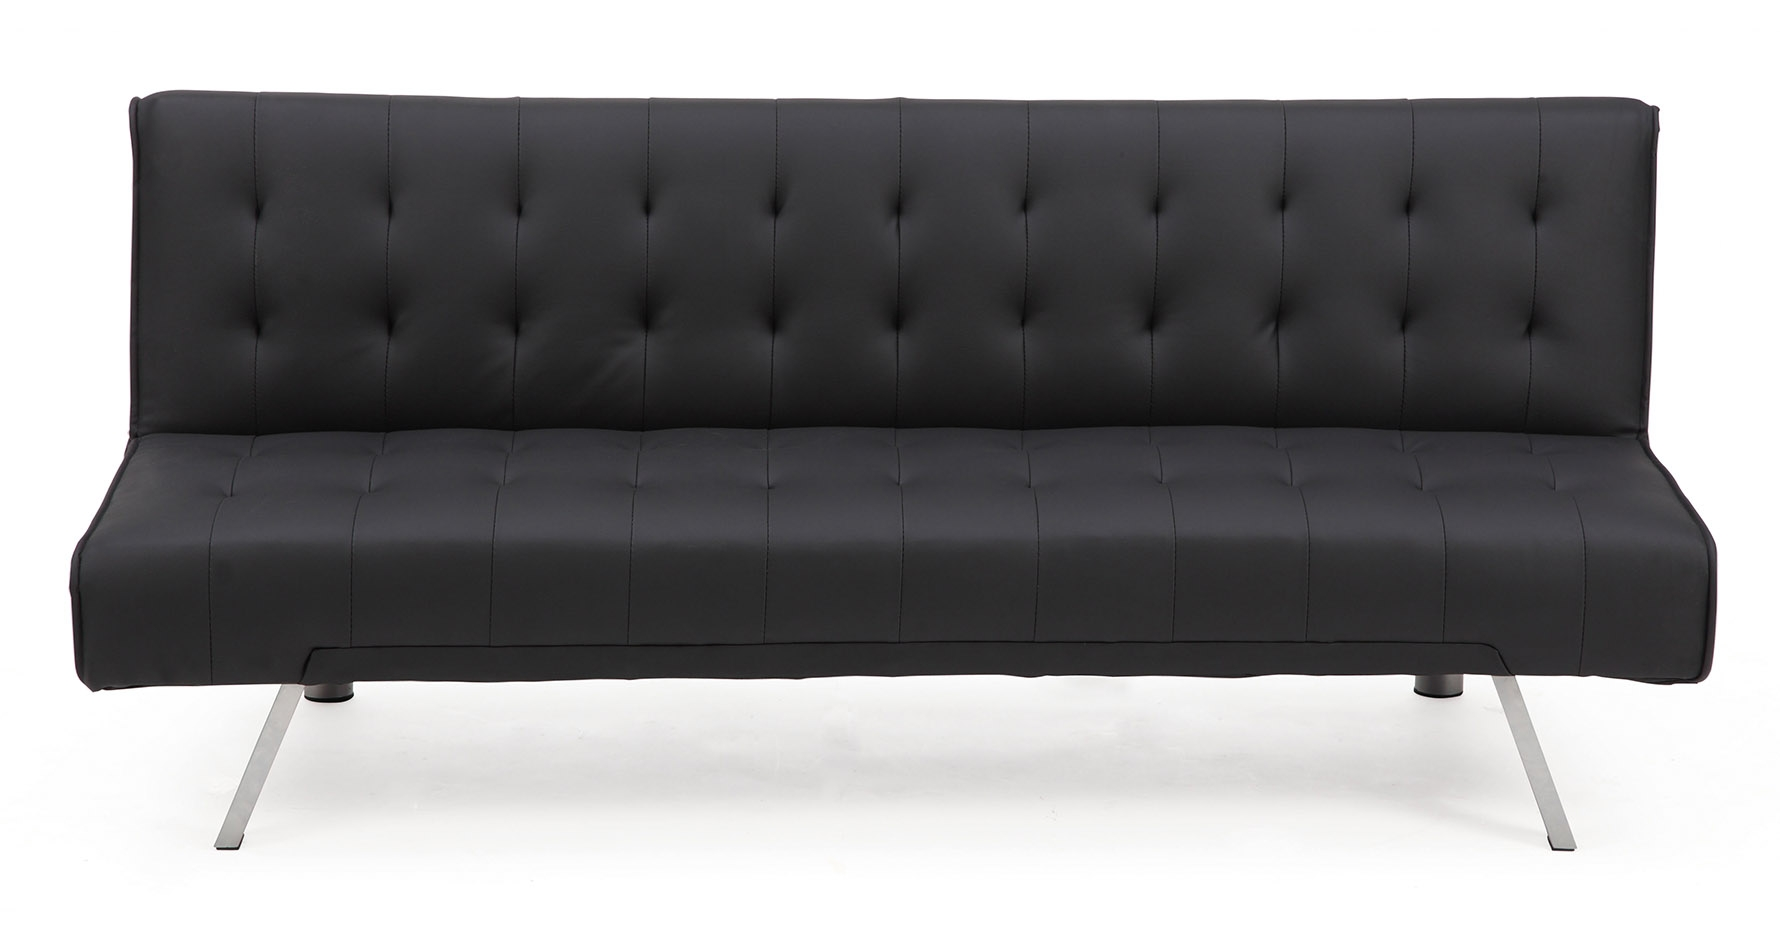 banquette clic clac noir capitonn design royal sofa. Black Bedroom Furniture Sets. Home Design Ideas